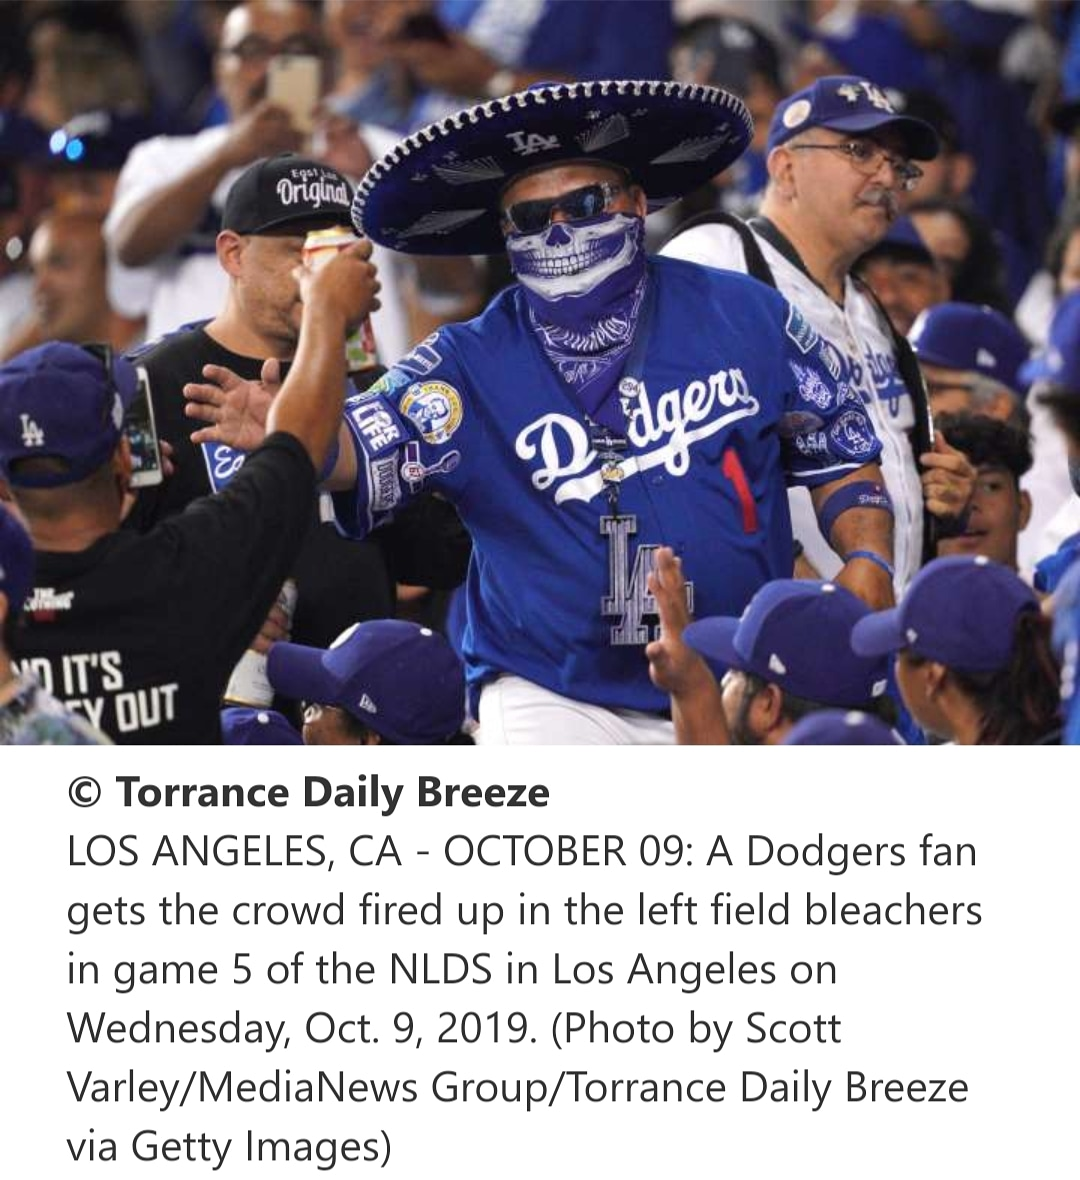 Ajuaa! Getting The Crowd Fired Up In The Leftfield Pavilion In Game 5 NLDS! Just Missing Dodger Baseball! Nice Shot! 📸💀⚾️💙🙏🏻🙌🏼👋🏻☝🏼🔥💯 #LA #NLDS #HastaLAmuerte #LABleedsBlue #Dodgers #Mariachiloco